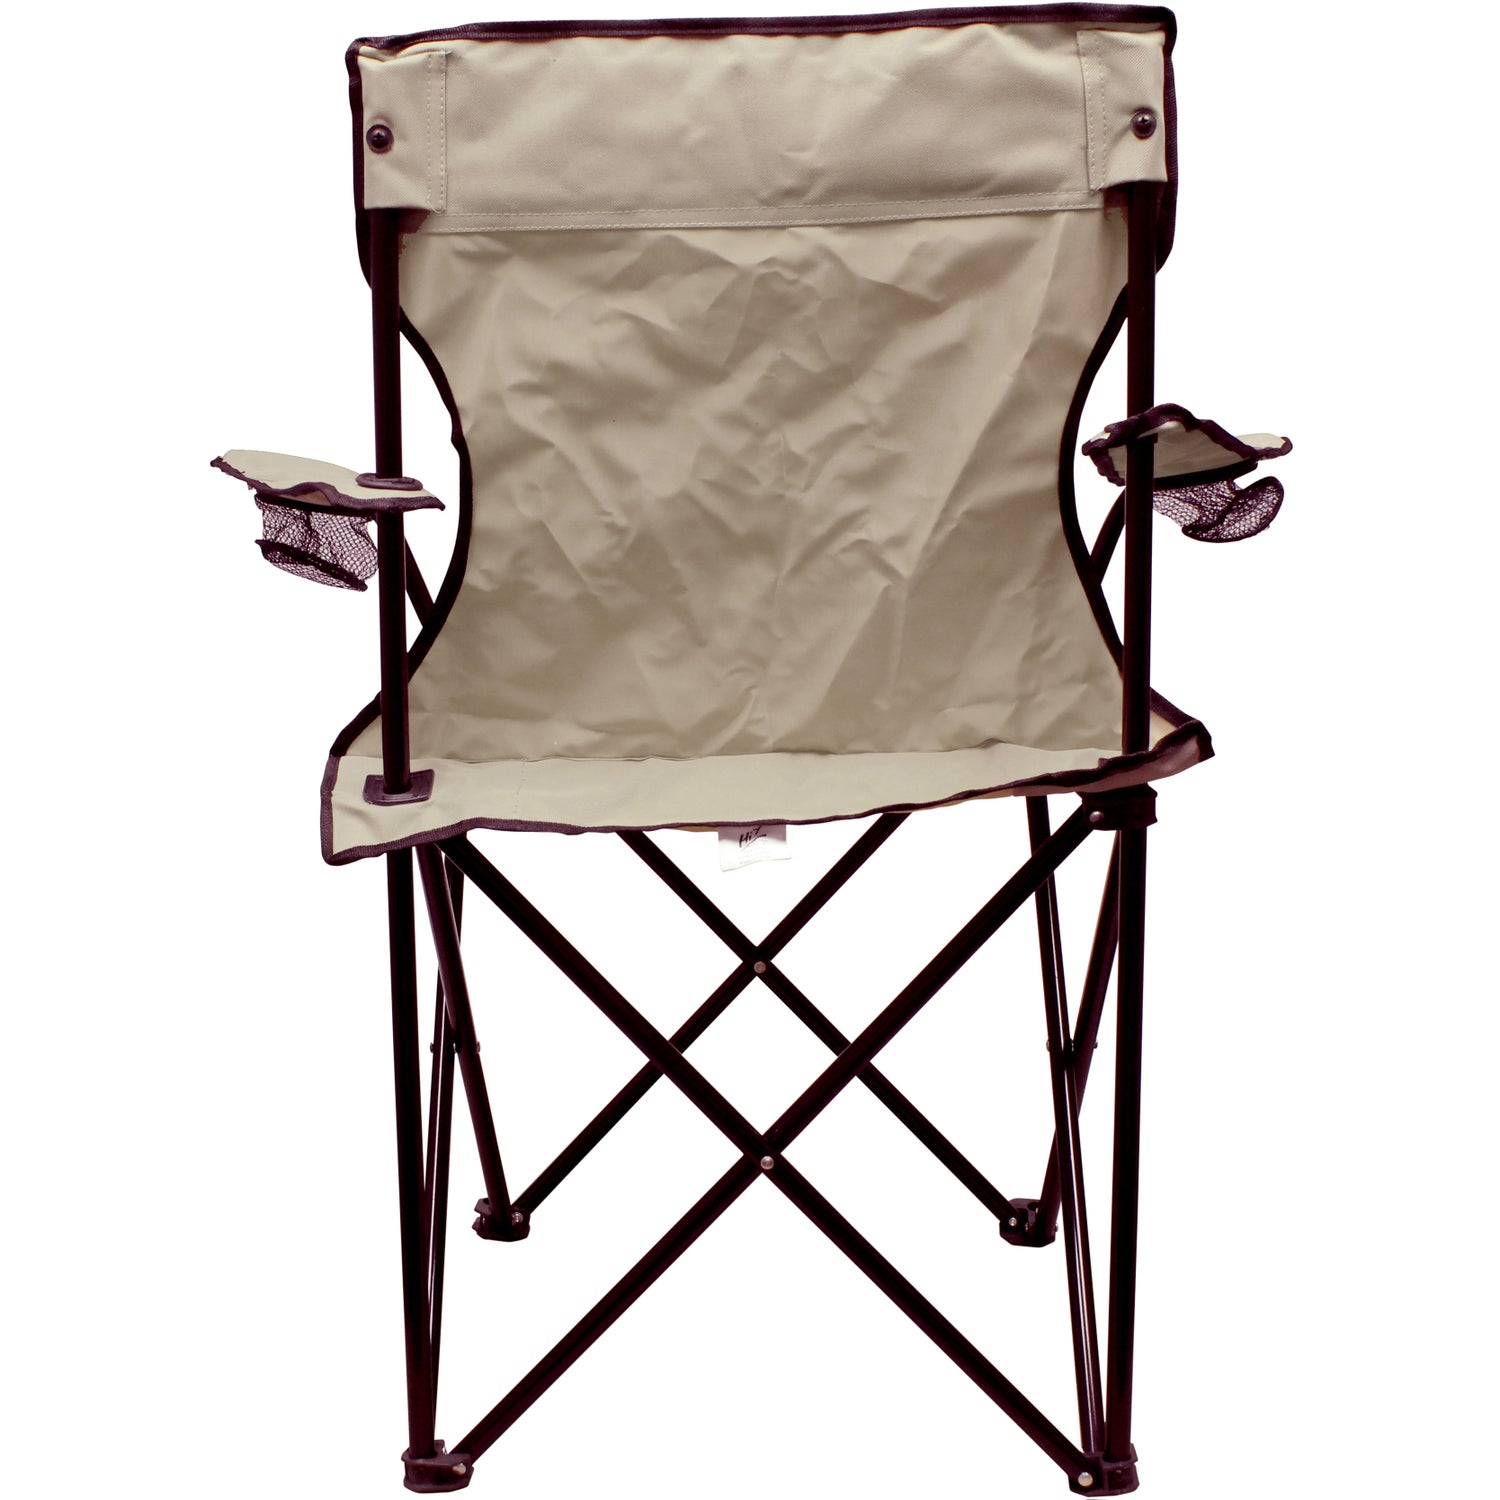 Folding Chair with Carrying Bag for your School